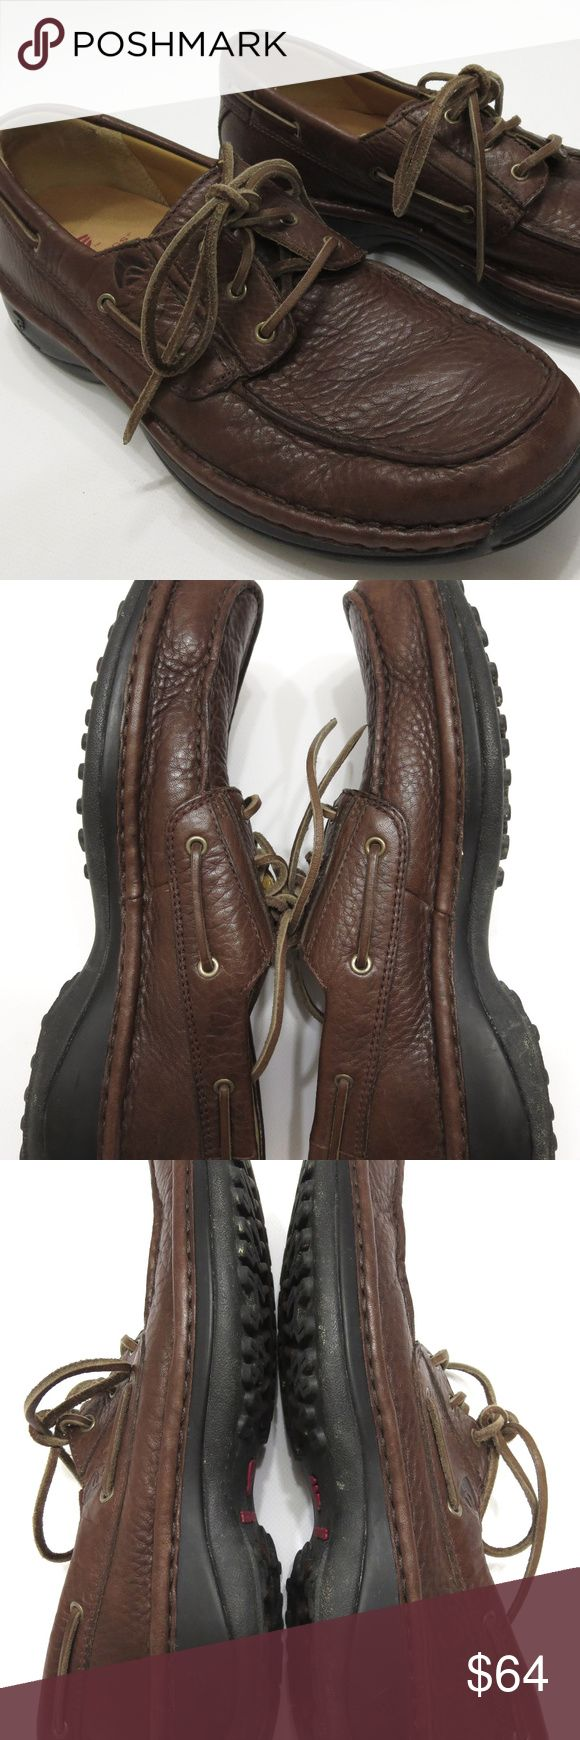 """Red Wings Oxford 9 B Narrow Brown Pebbled Leather Red Wings Oxford 9 B Narrow Brown Pebbled Leather Mens Boat Deck Shoes 4050    Pebbled Leather     Removable Cushioned Insole     Rubber Heel Guard     Ridged Rubber Sole  11"""" / 27.94 cm Length - Toe to Heel inside 4 1/2"""" / 11.43 cm Width at widest part of sole outside      All items from a smoke and pet free environment Condition - light scuffs Red Wing Shoes Shoes Oxfords & Derbys"""